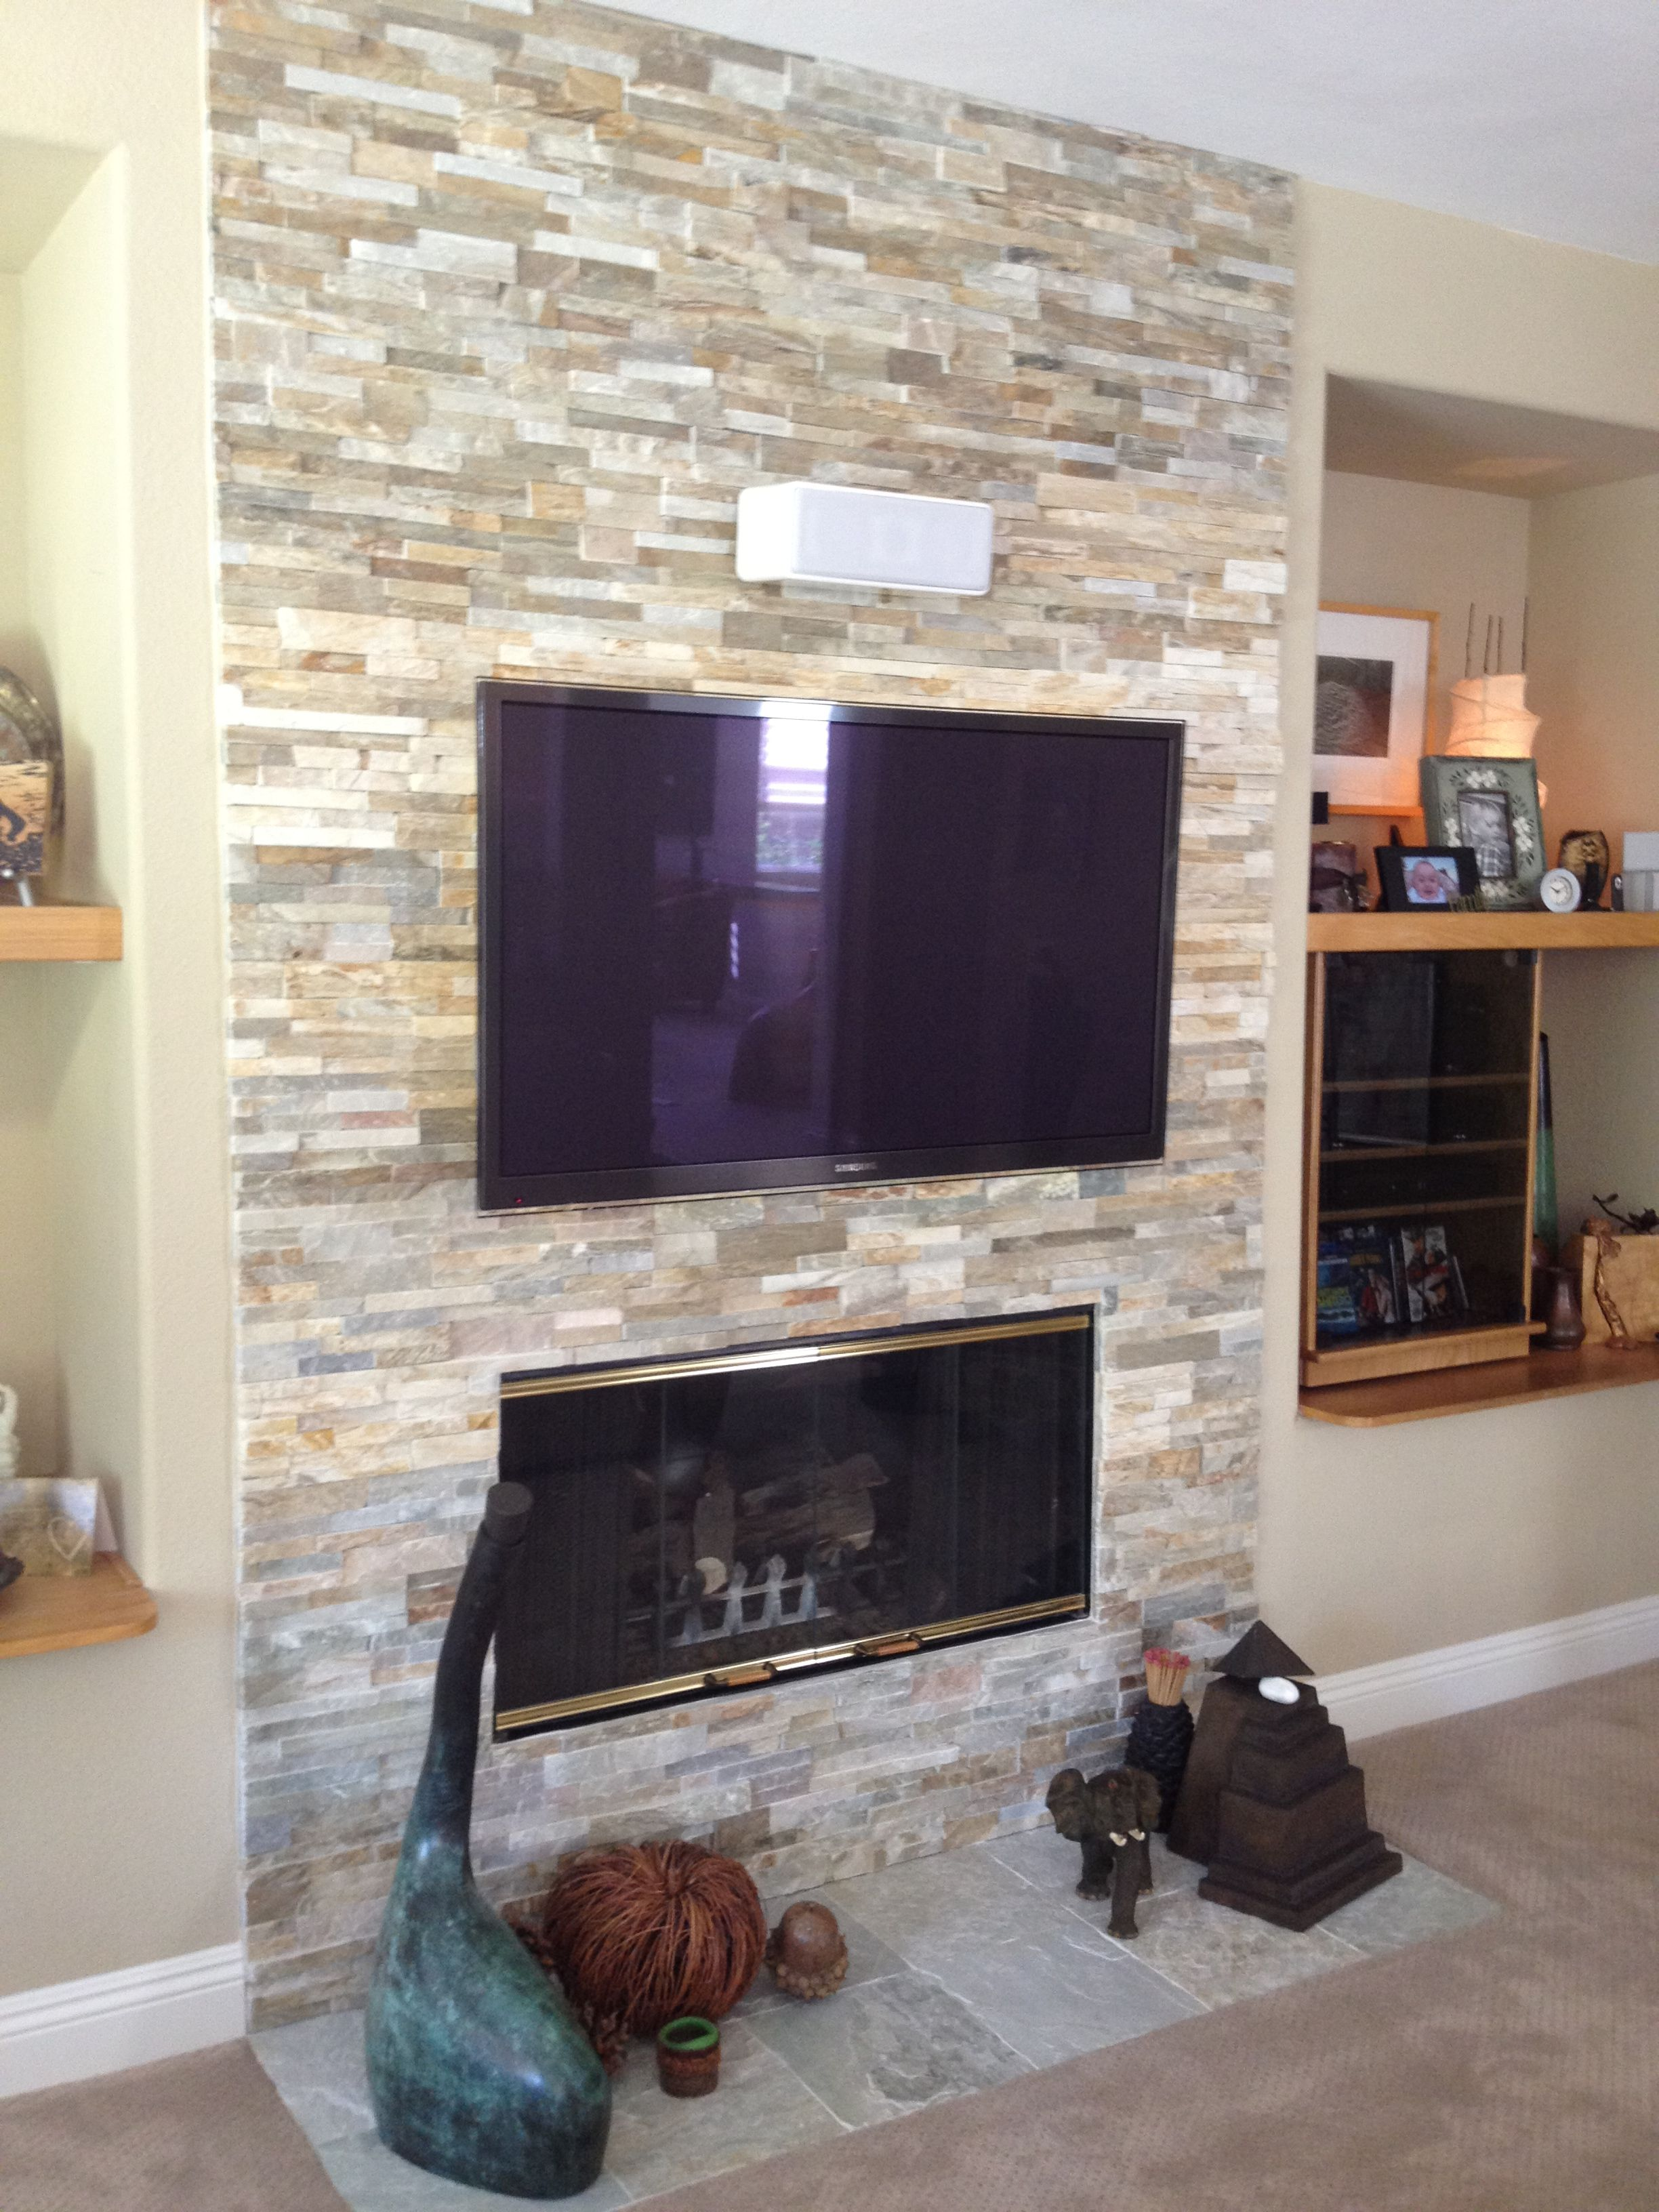 Fireplace remodels ideas scroll down for a photo of what this fireplace remodels ideas scroll down for a photo of what this fireplace looked like before teraionfo